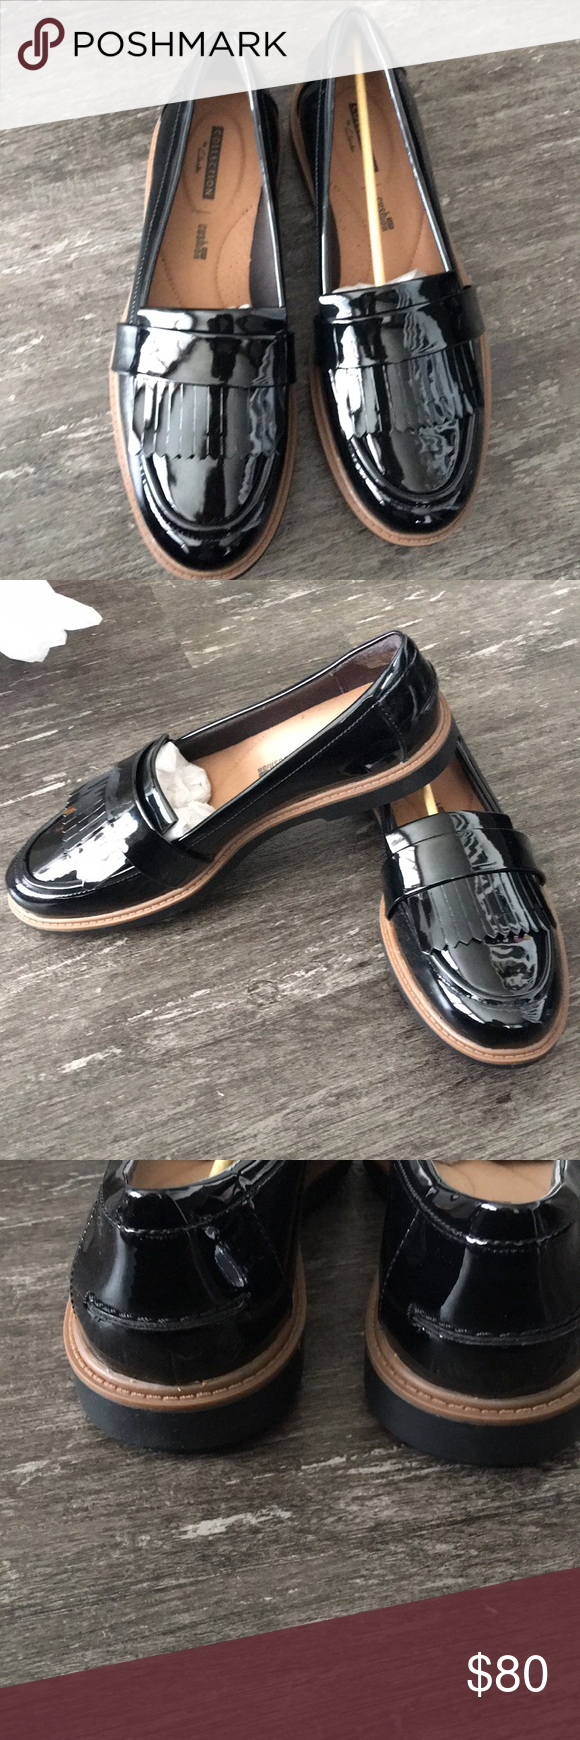 ab316a43e69 Clark s Raise Theresa loafer The Raise Theresa by Clarks Collection is  fresh take on the traditional loafer. A sleek